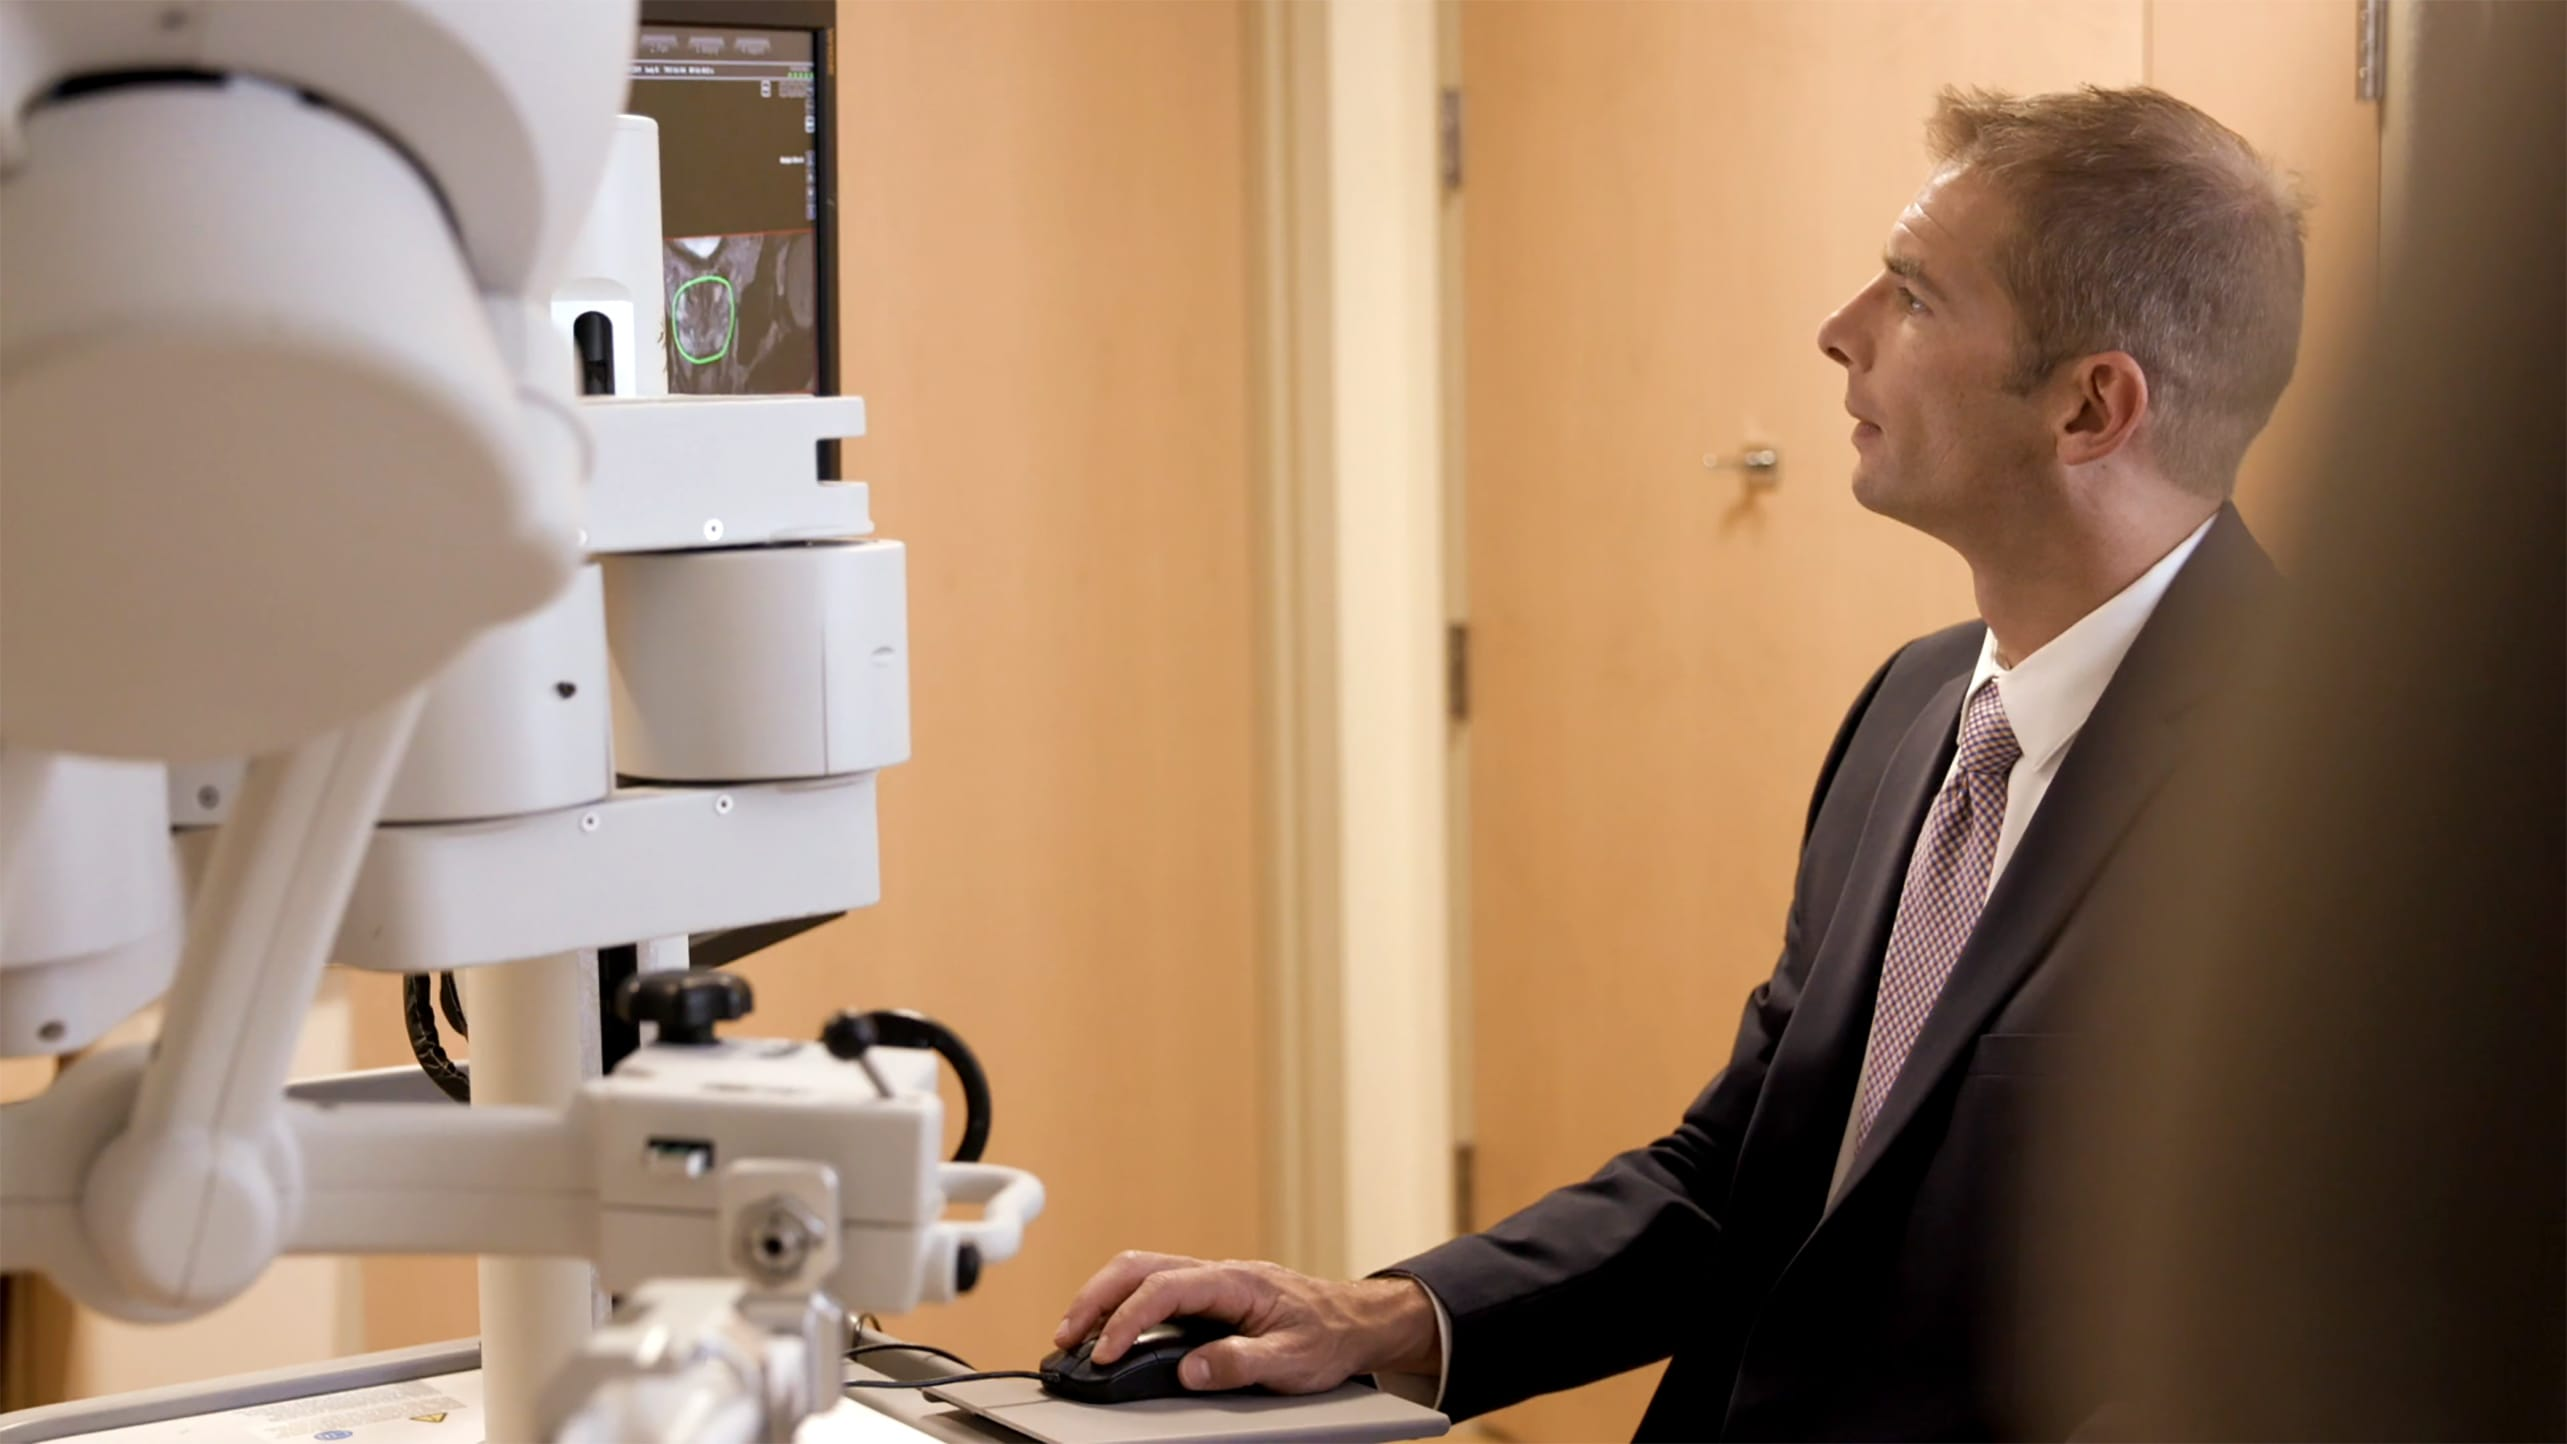 A doctor examines imaging to detect prostate cancer.